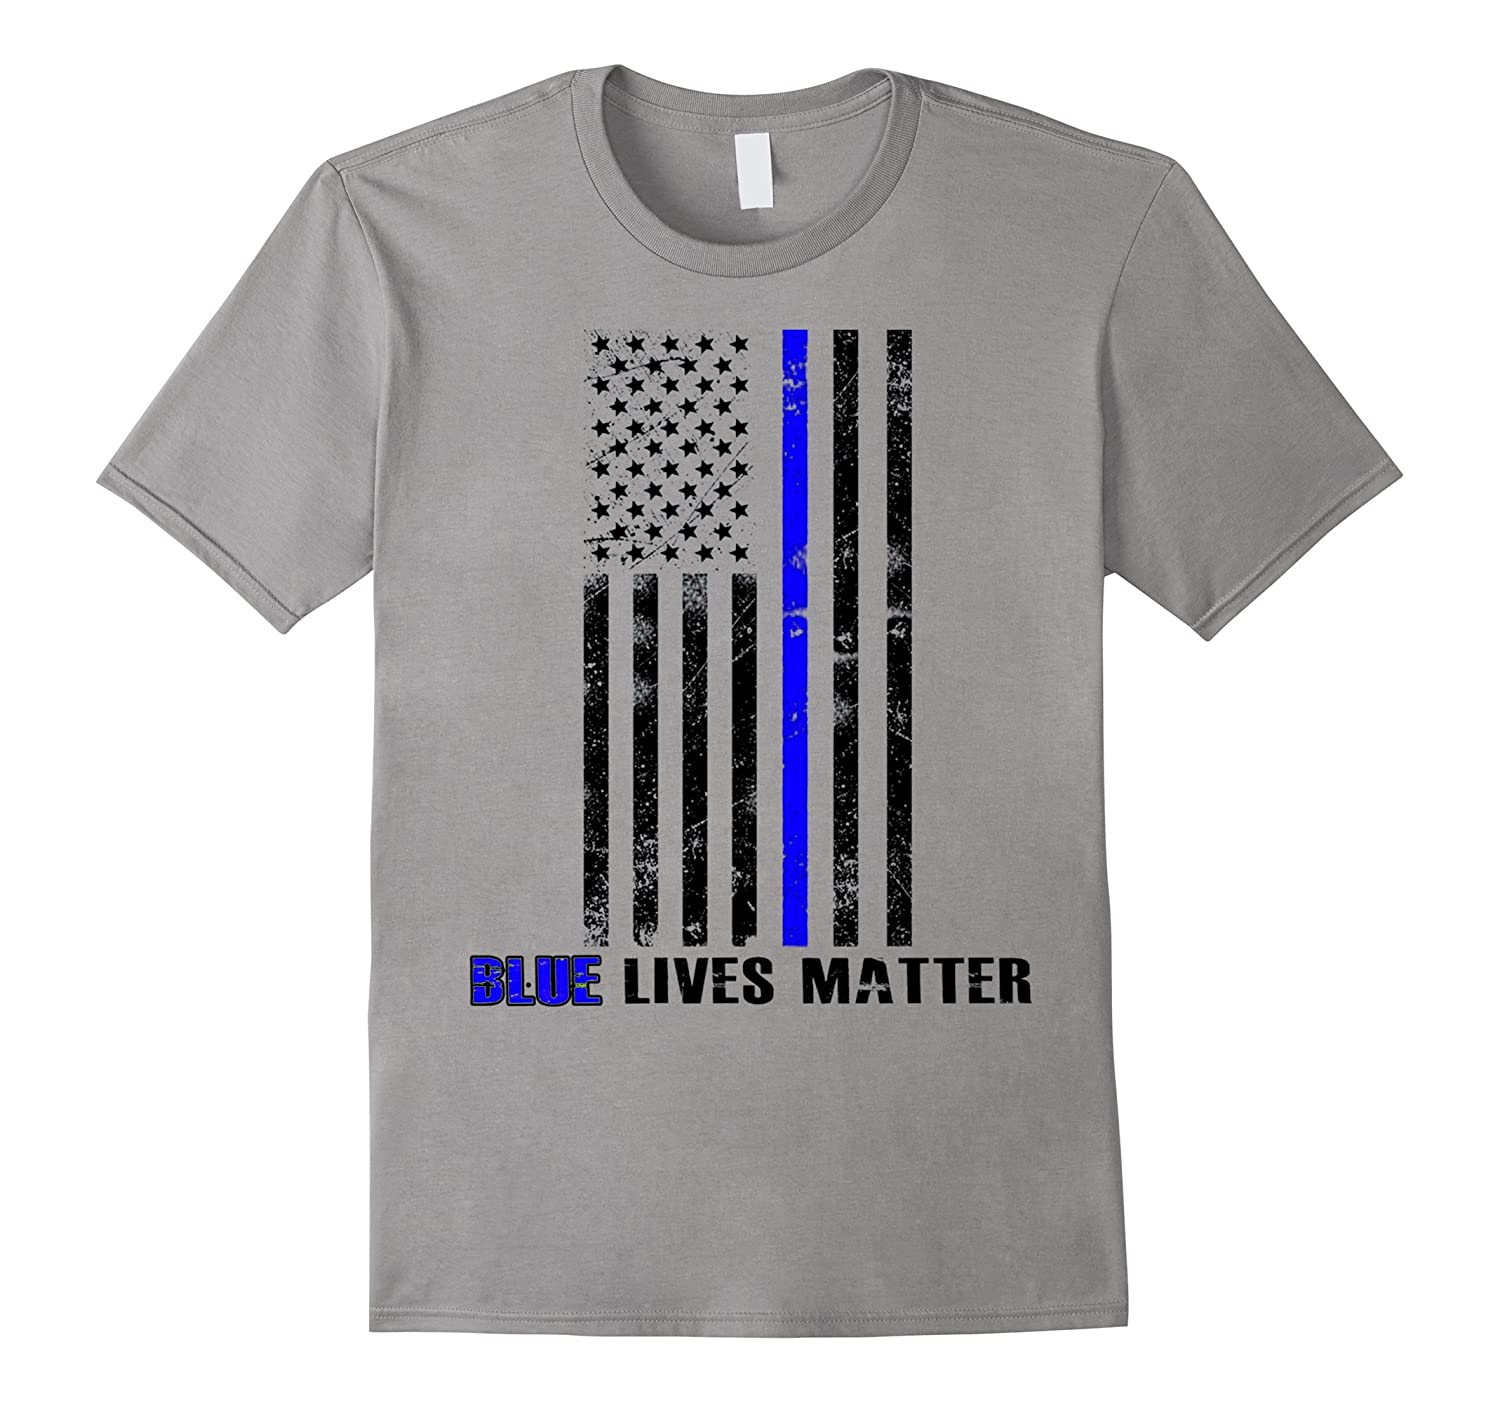 Blue lives matter Thin Blue Line Shirt Support Police-TD